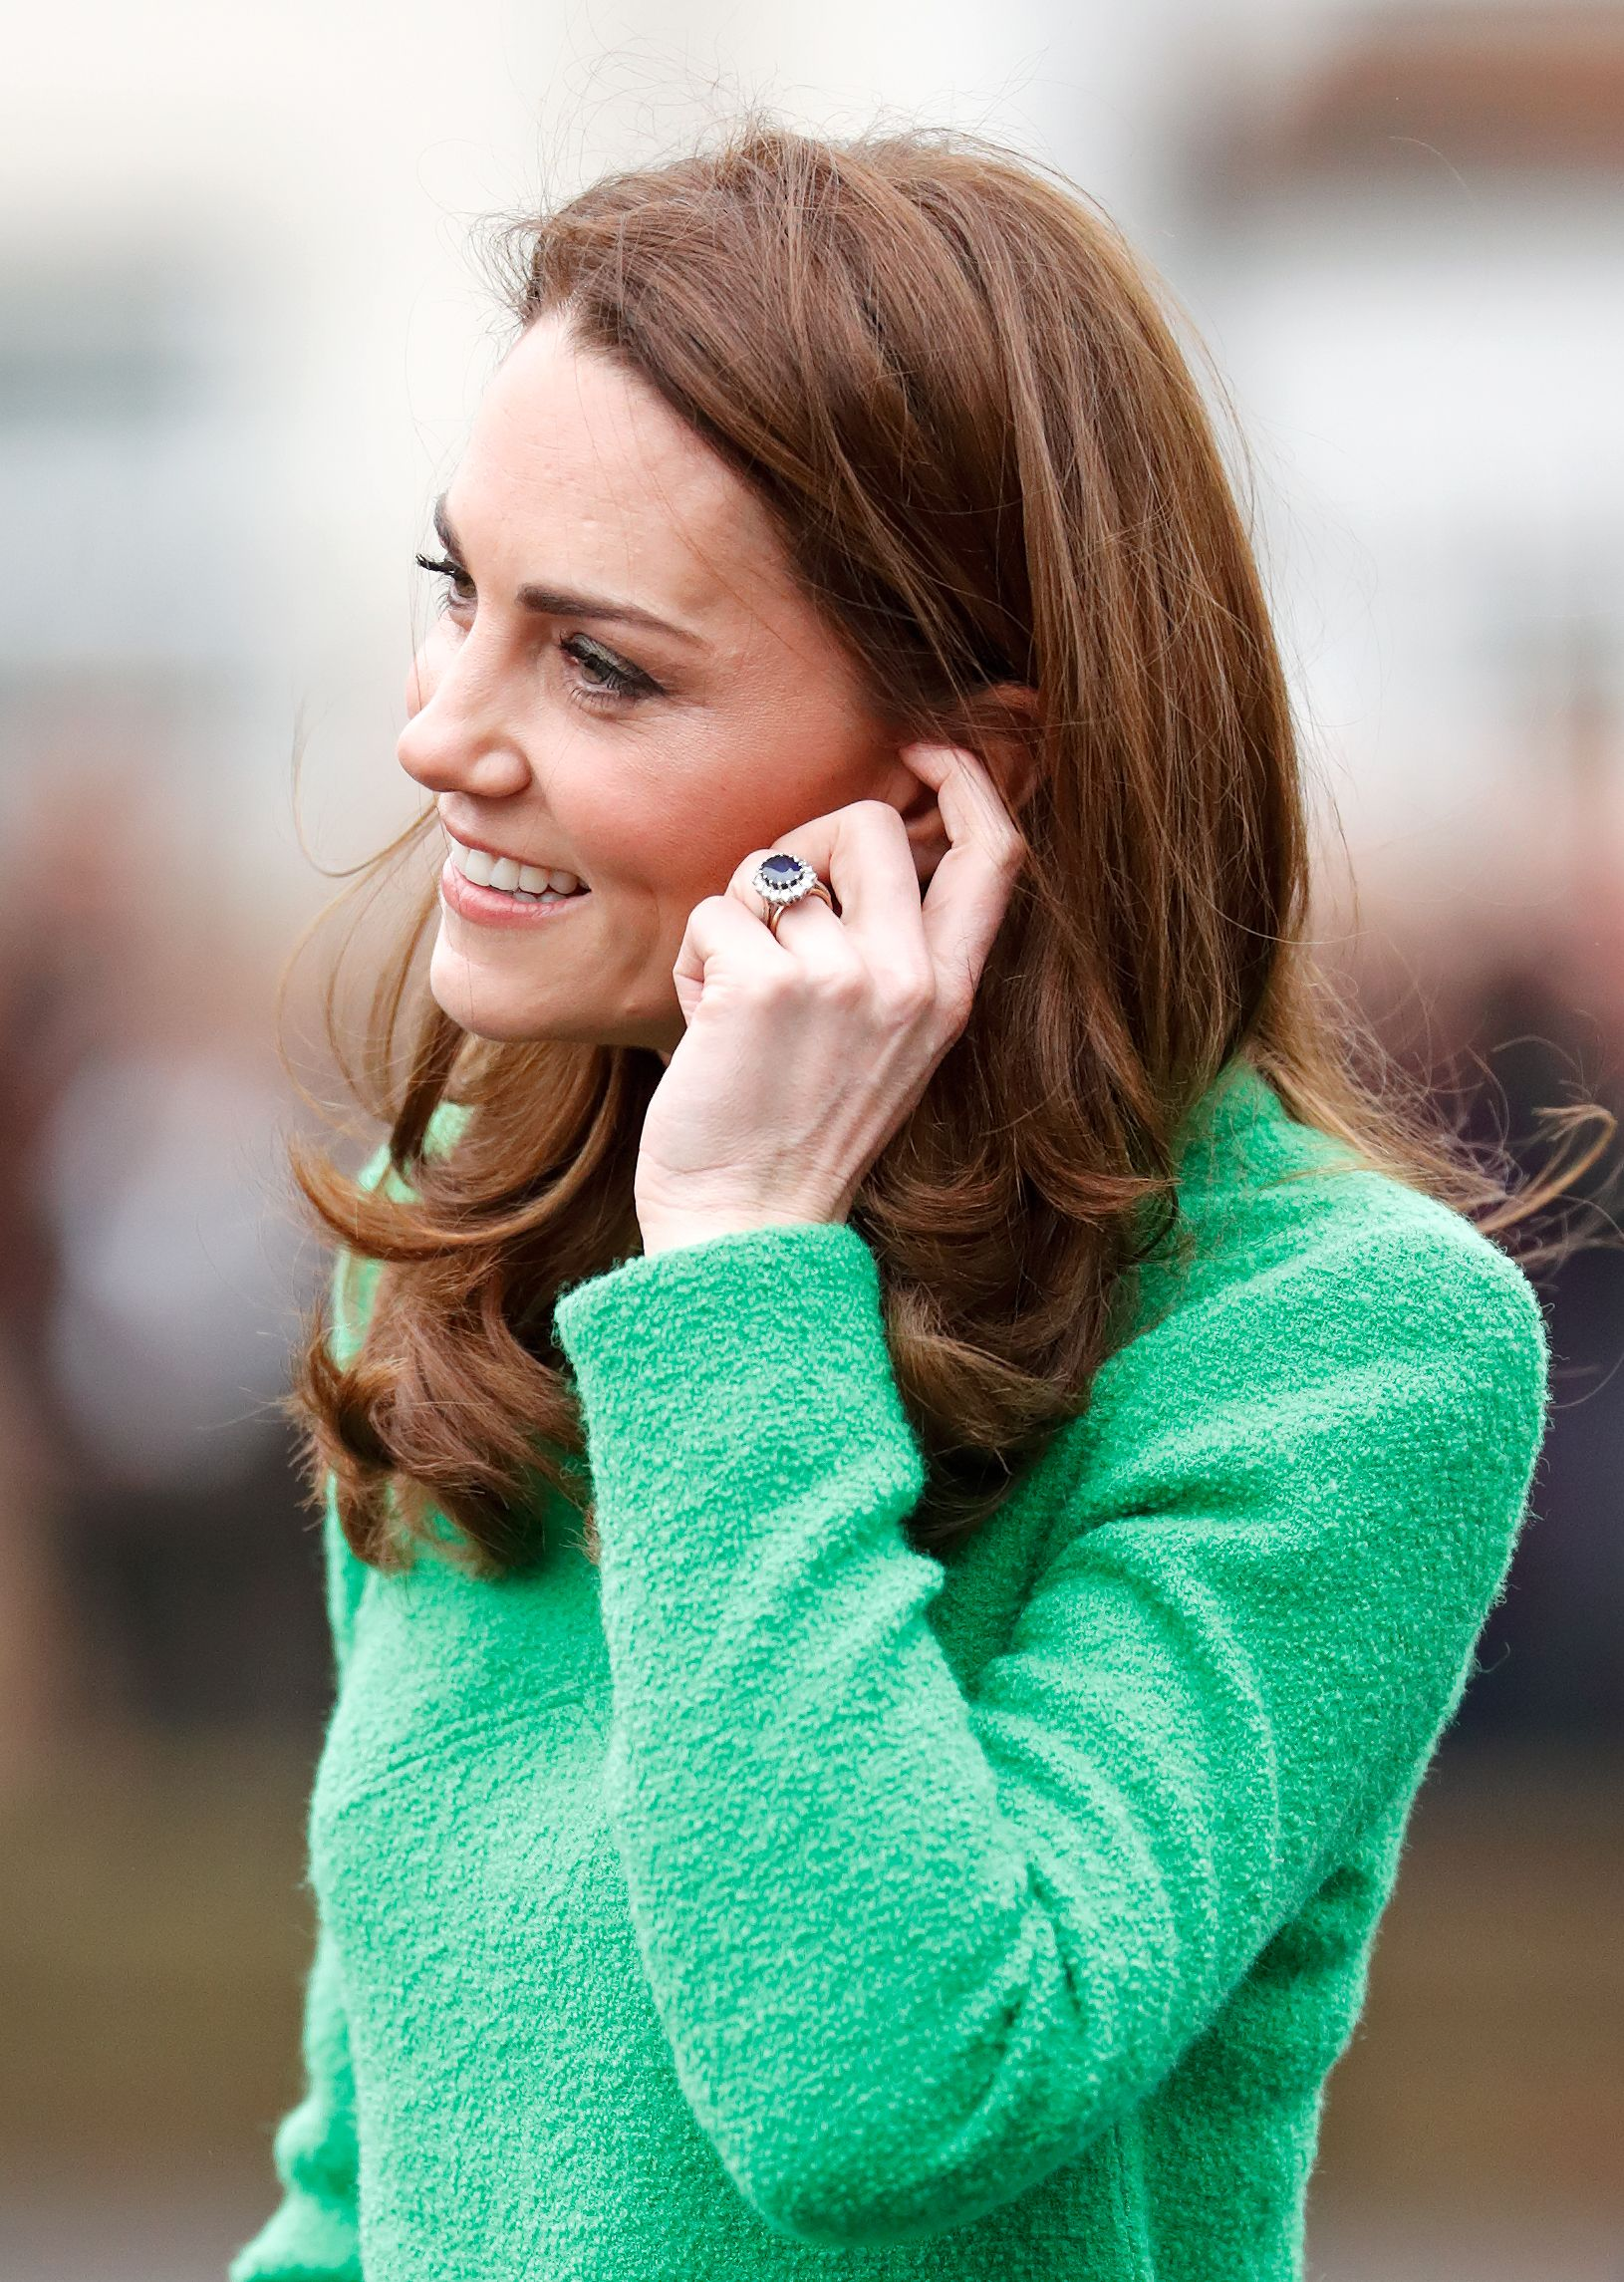 Kate Middleton's Most Controversial Royal Moments - Kate